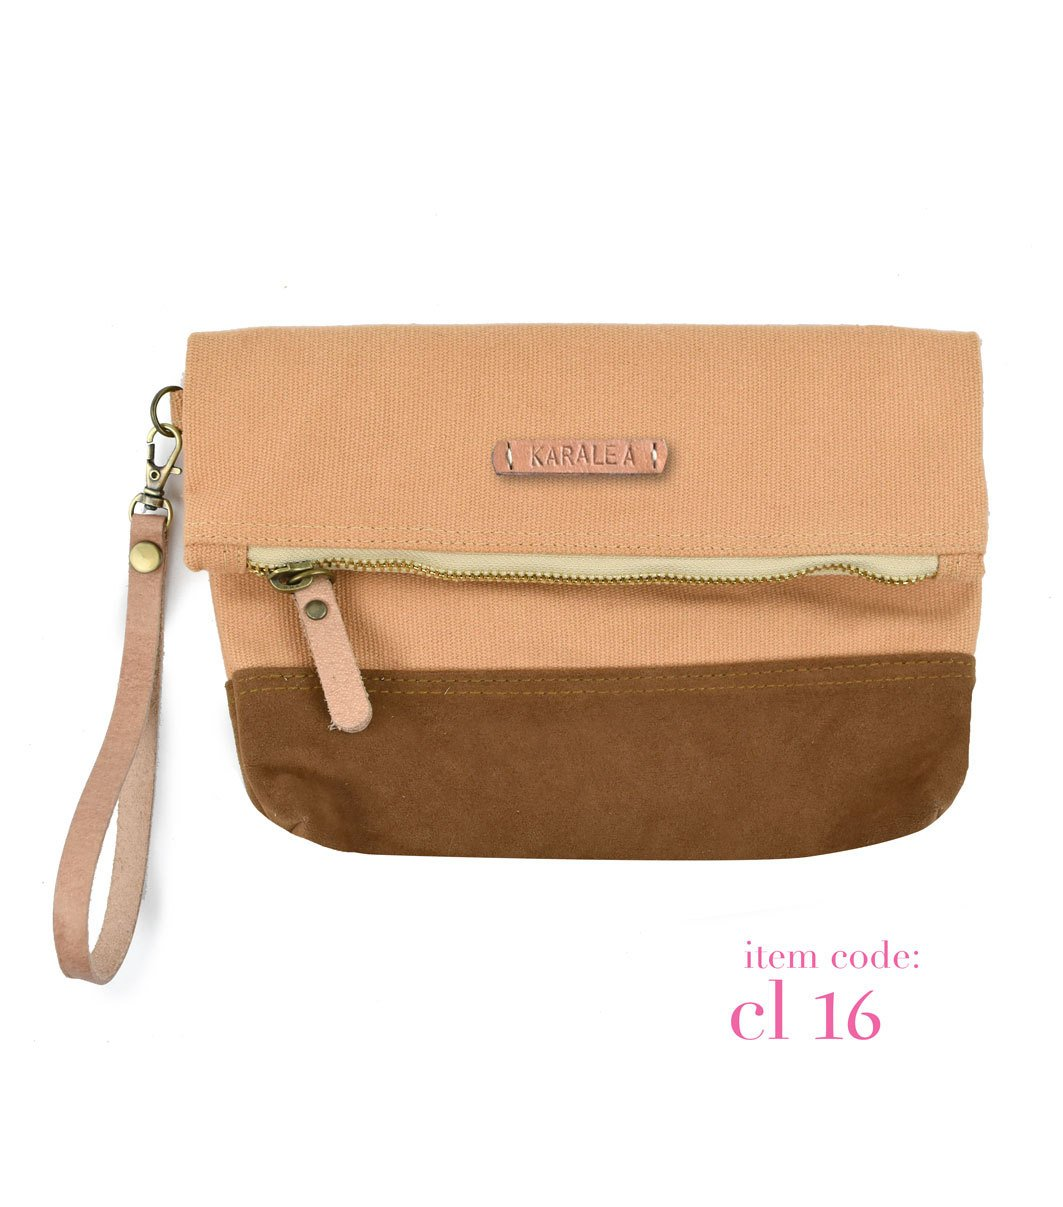 Borann Women Caramel Monogram Canvas Clutch Handbag Purse Bridesmaid Gift Personalized Your Name